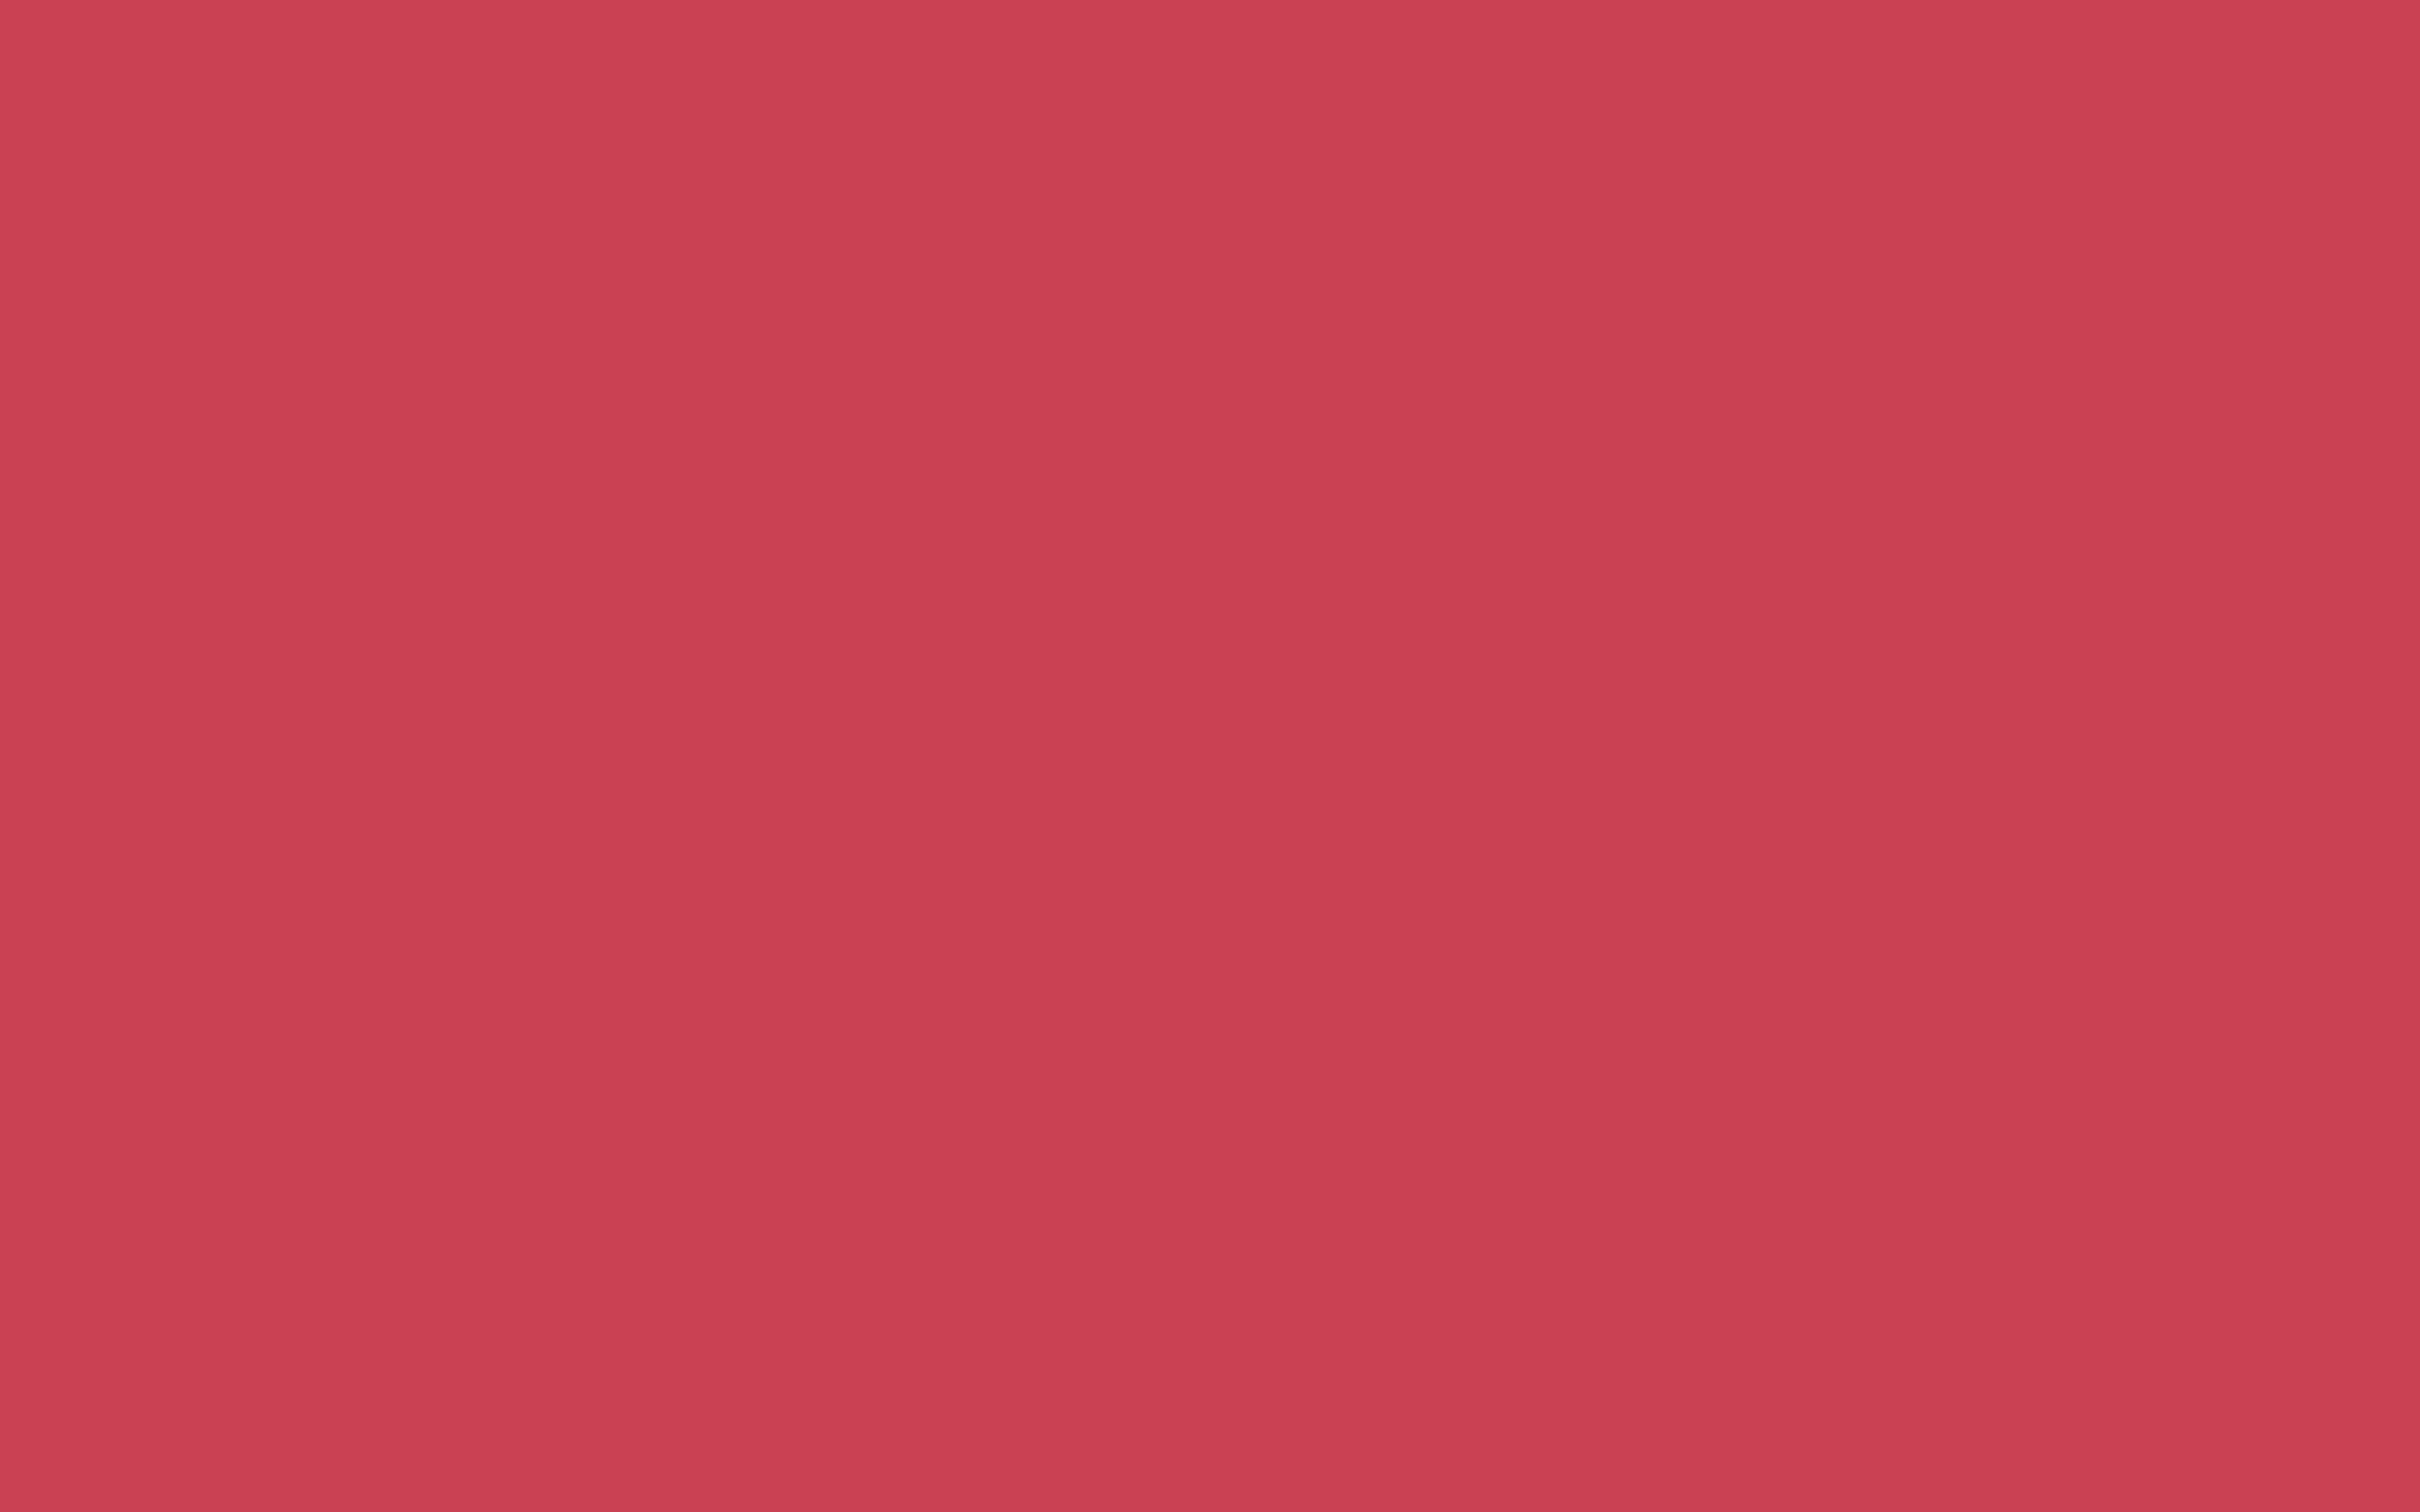 2880x1800 Brick Red Solid Color Background